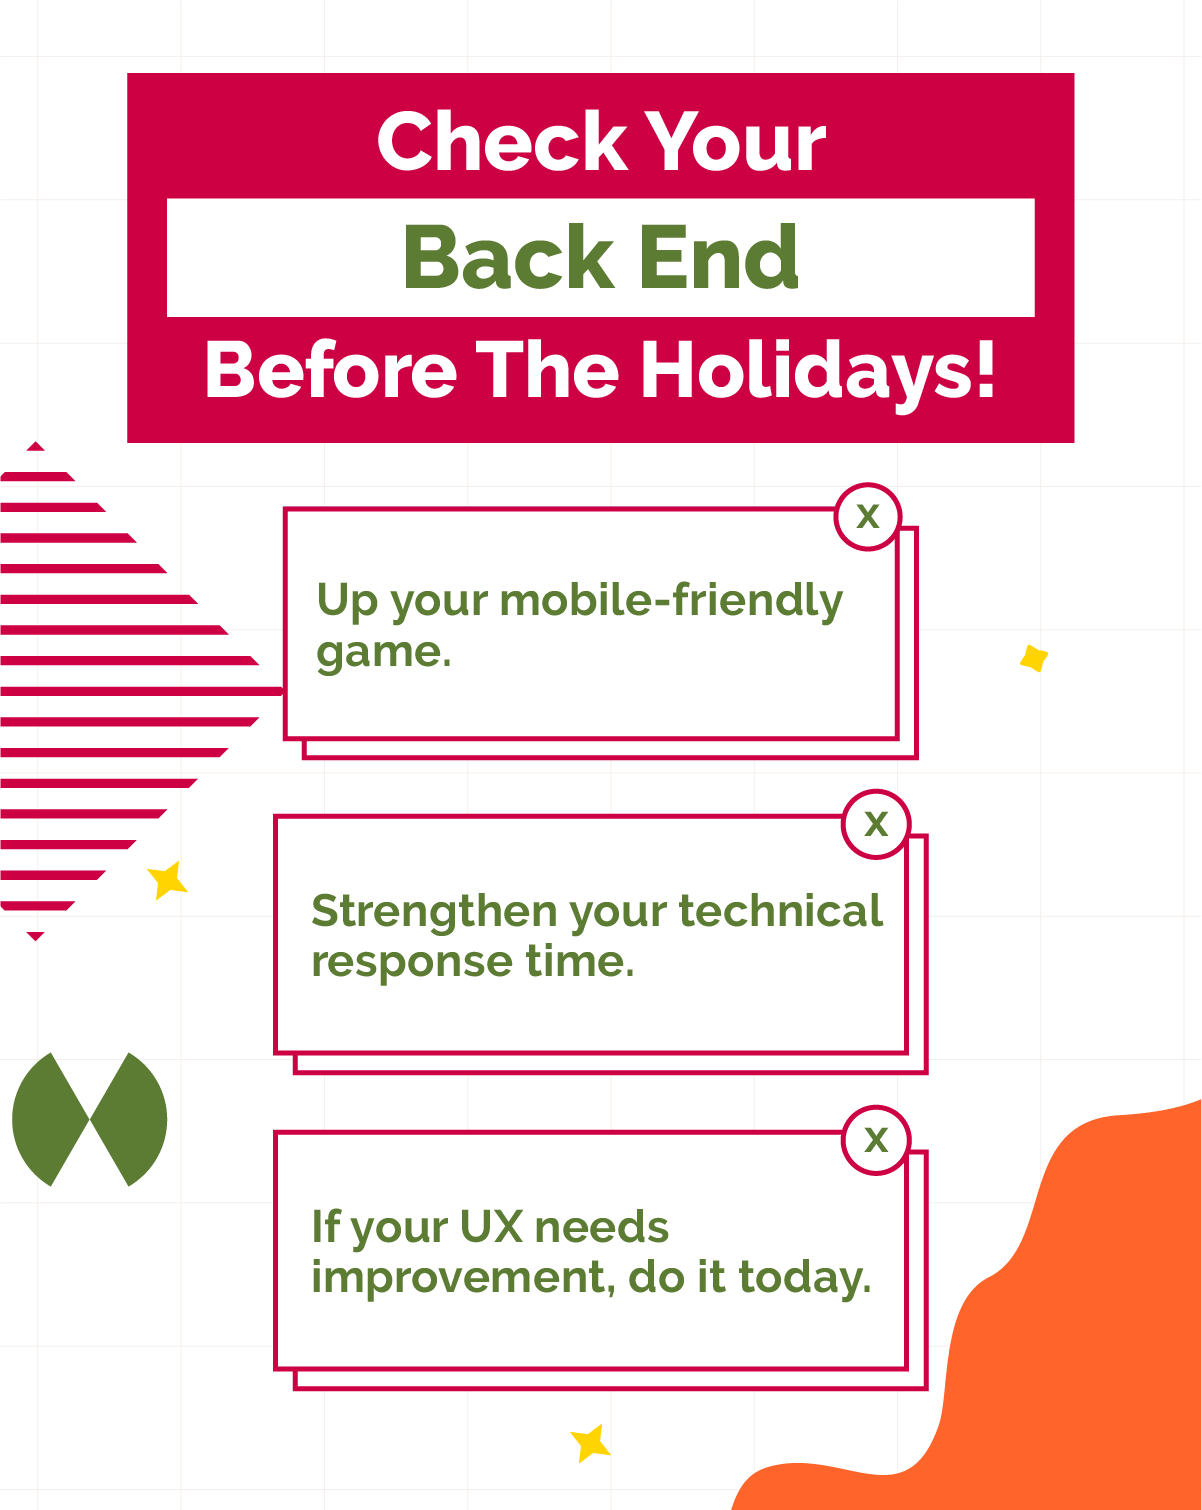 Check your back end before the holidays (Bonus Content)